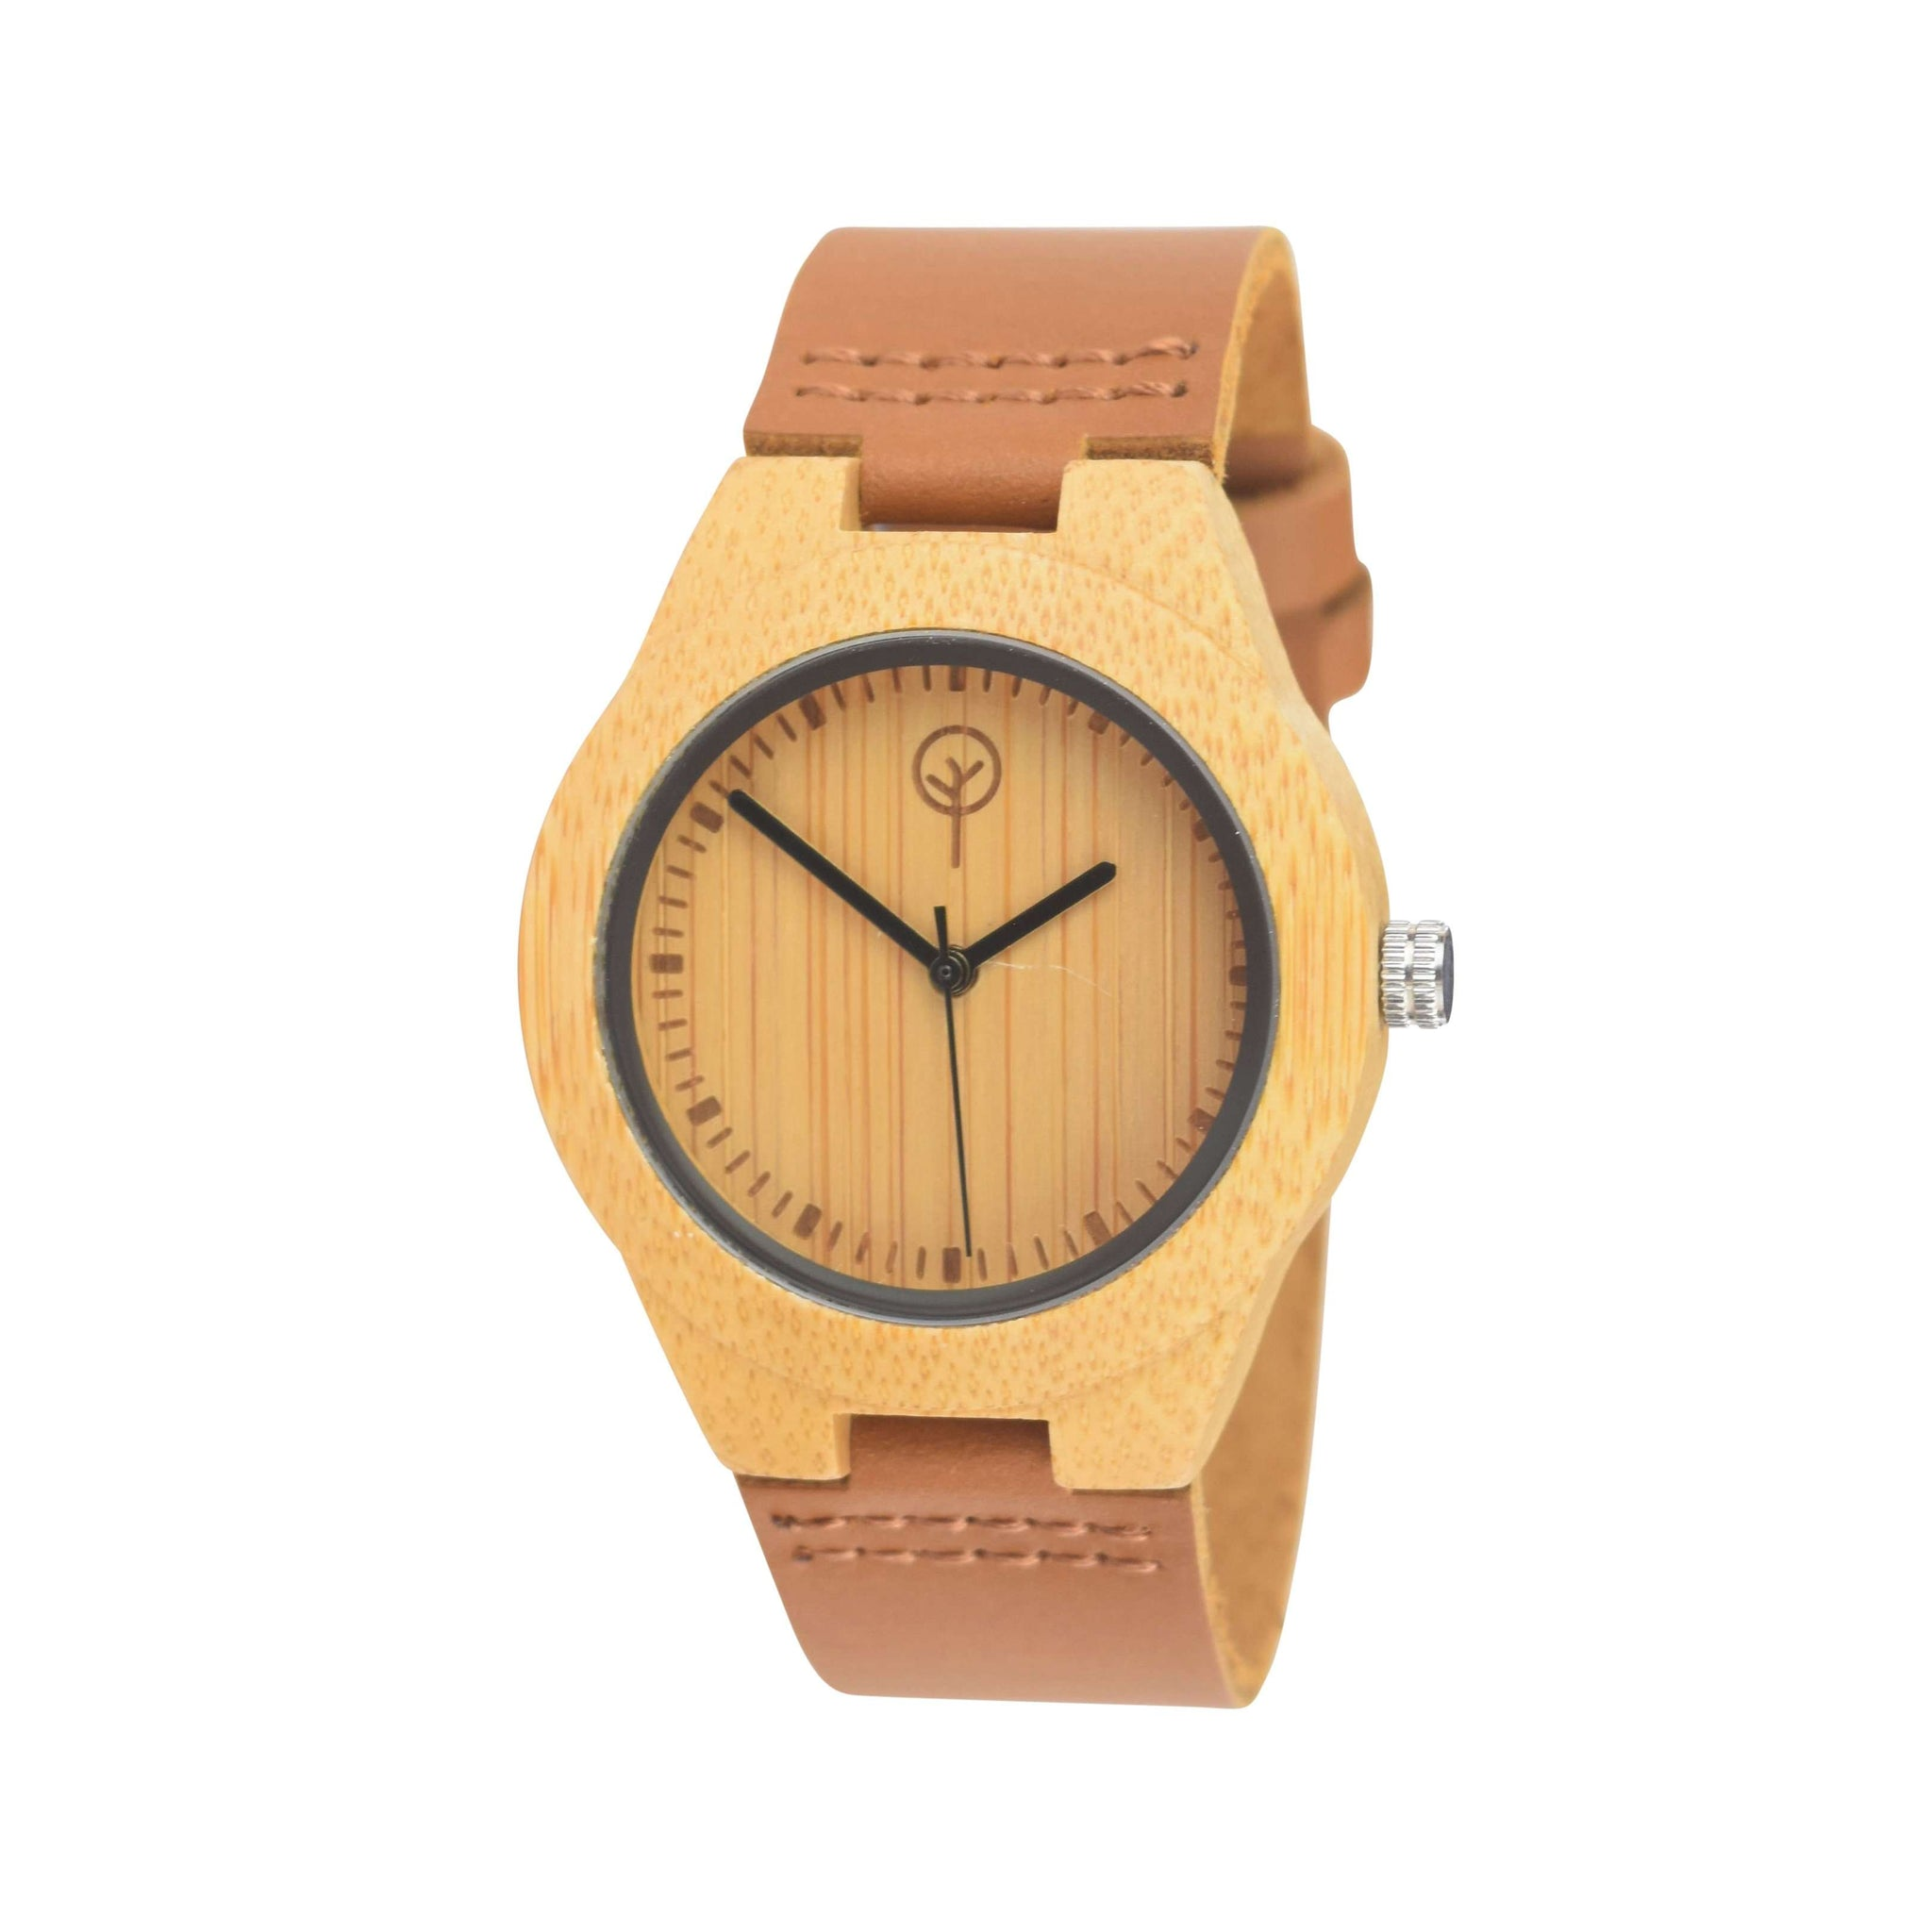 Vilo Womens Wooden Watch // Josephine: